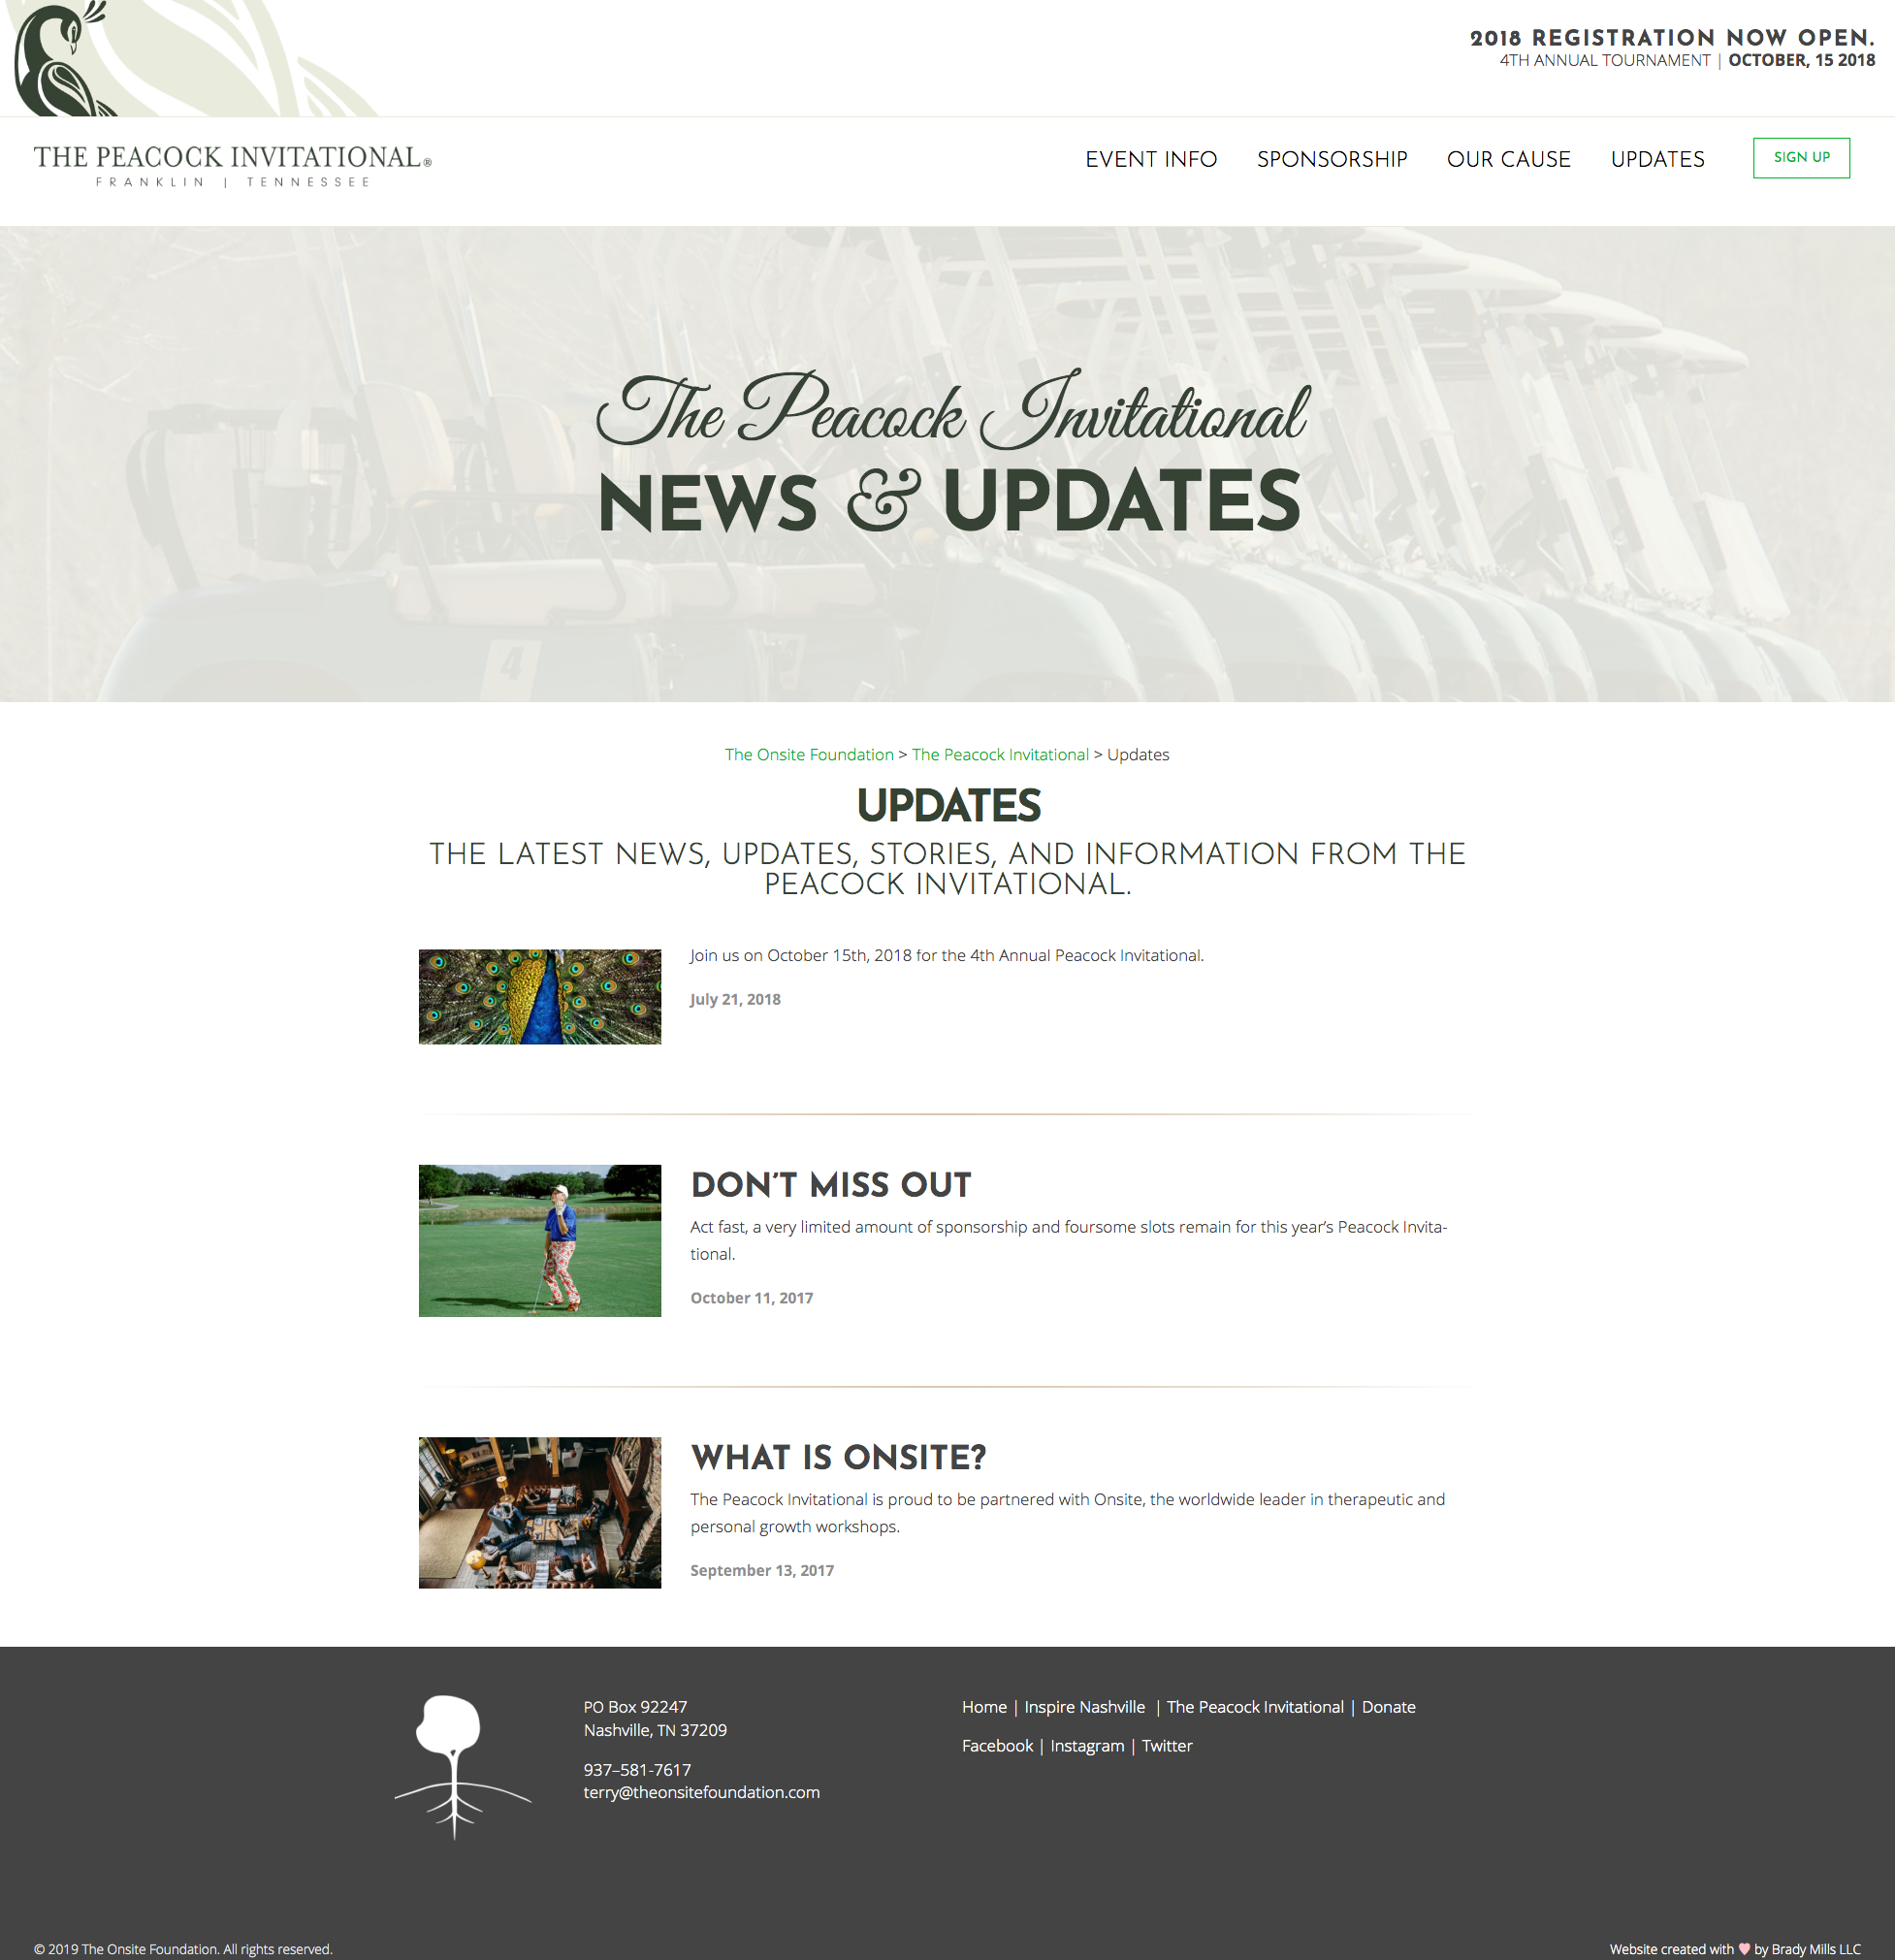 The Peacock Invitational Golfing and Sports Website Design